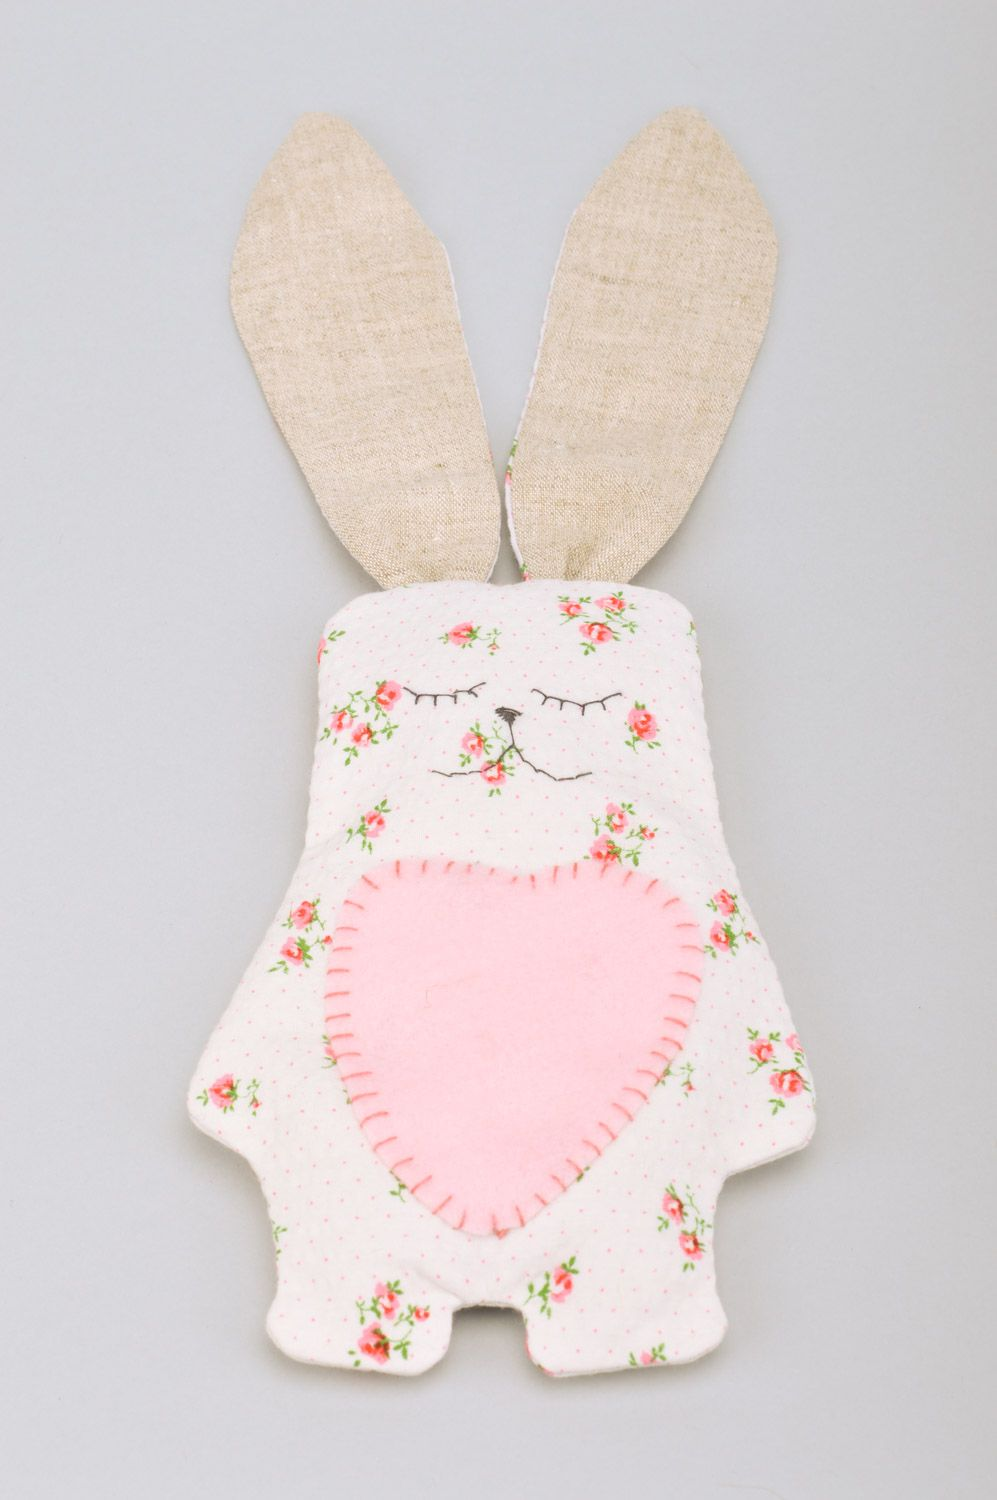 Handmade soft toy rabbit with long ears sewn of cotton fabric with floral print photo 2